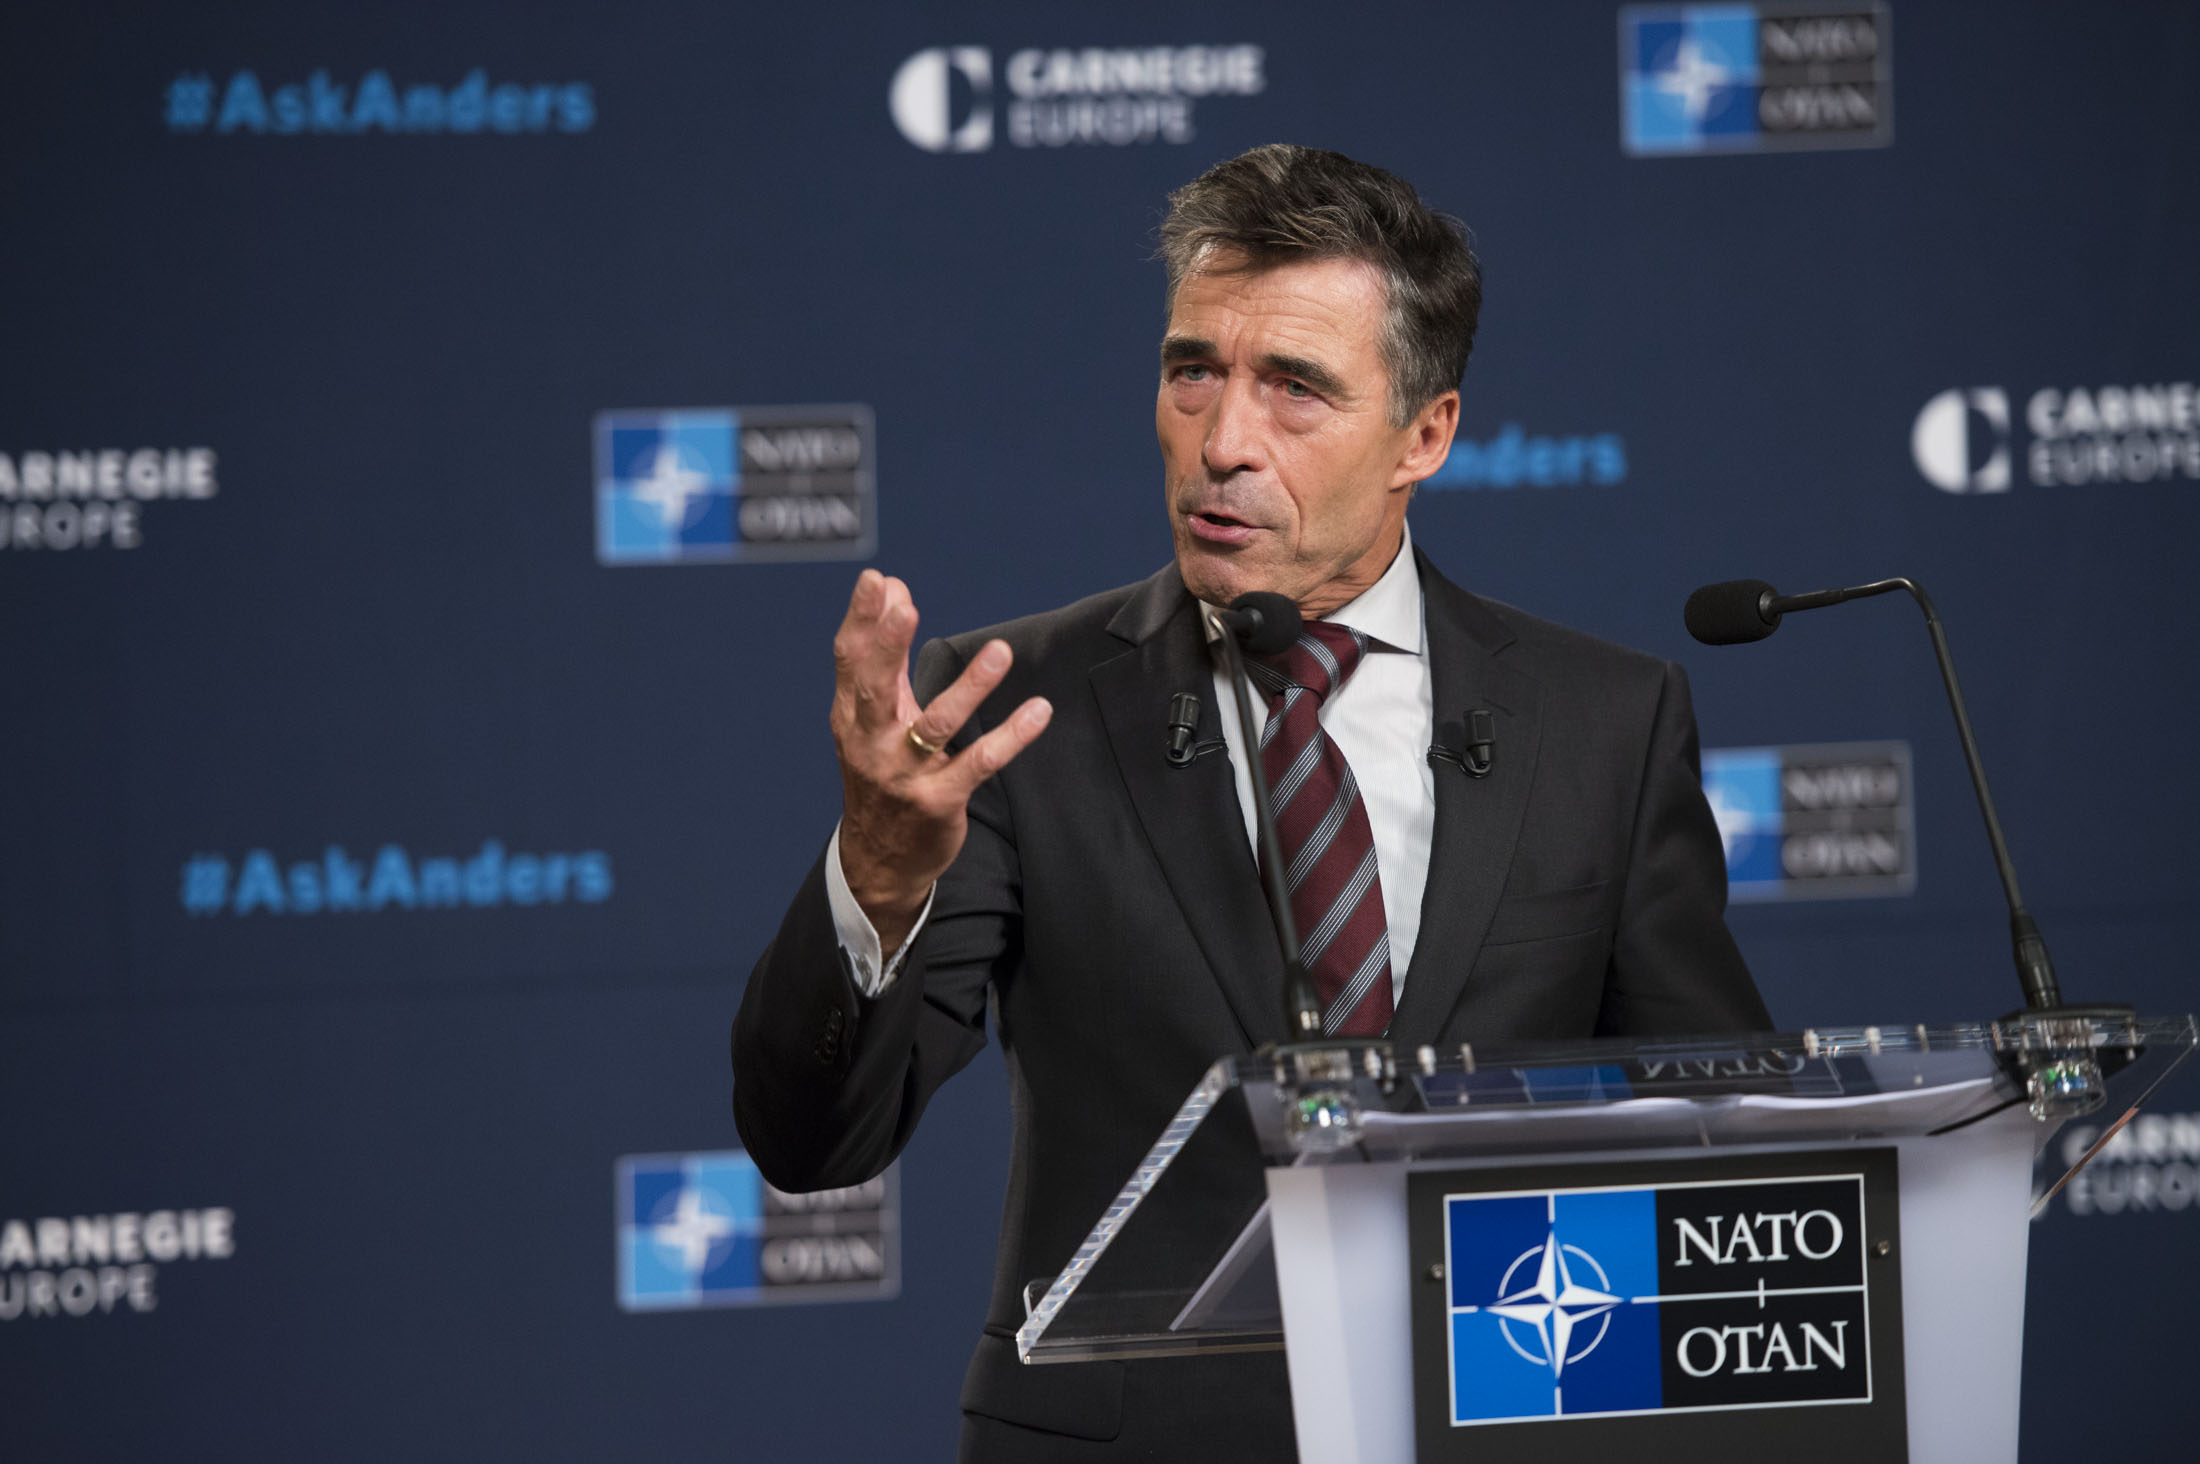 Secretary General Examines NATO's Need for Capabilities, Burden Sharing, and Partnerships